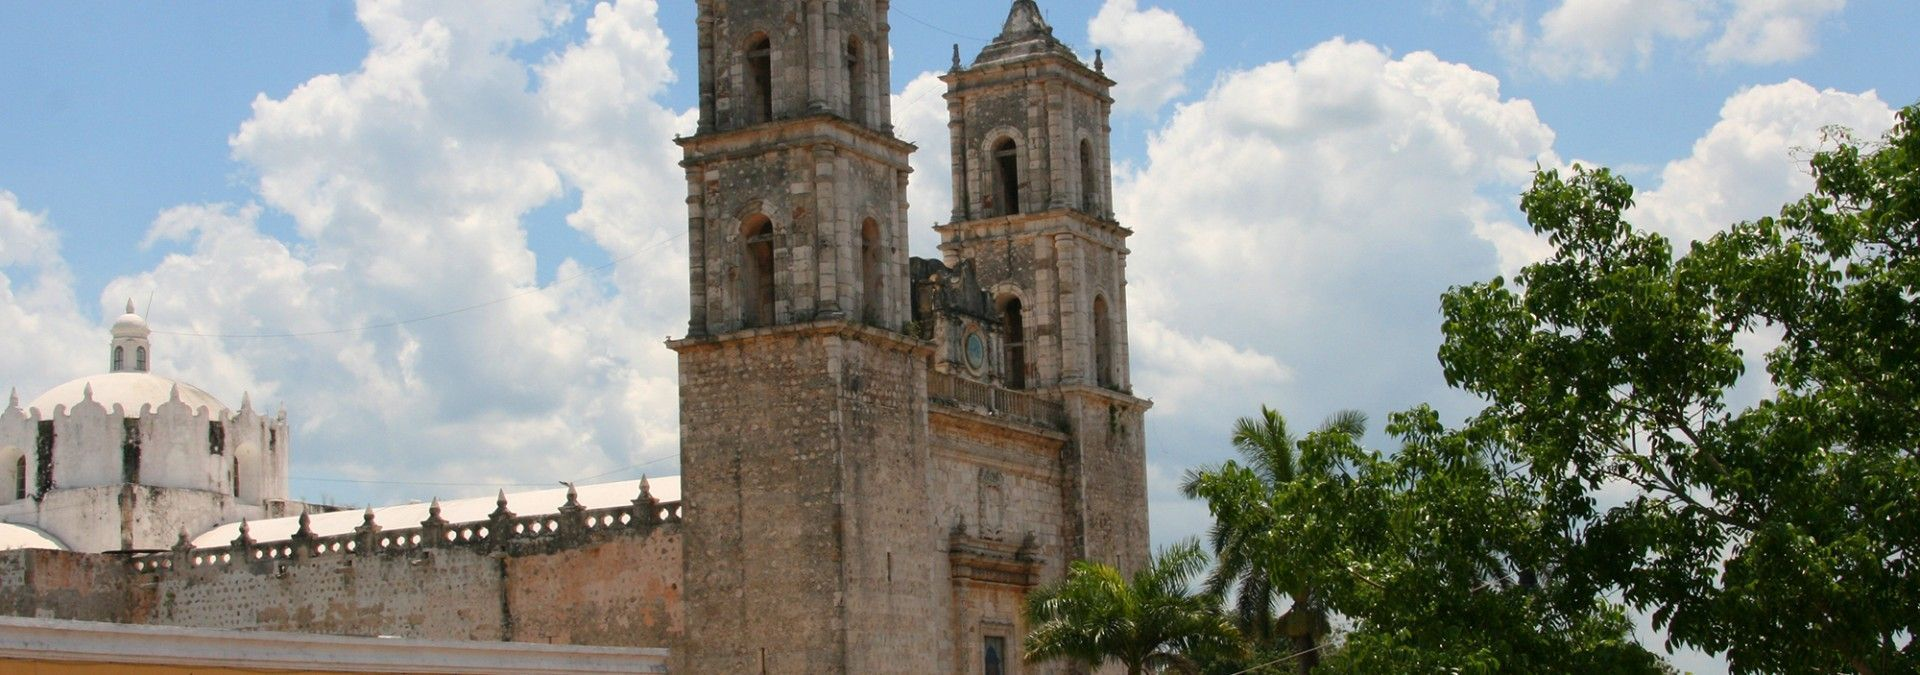 Church_of_Valladolid_Mexico.jpg